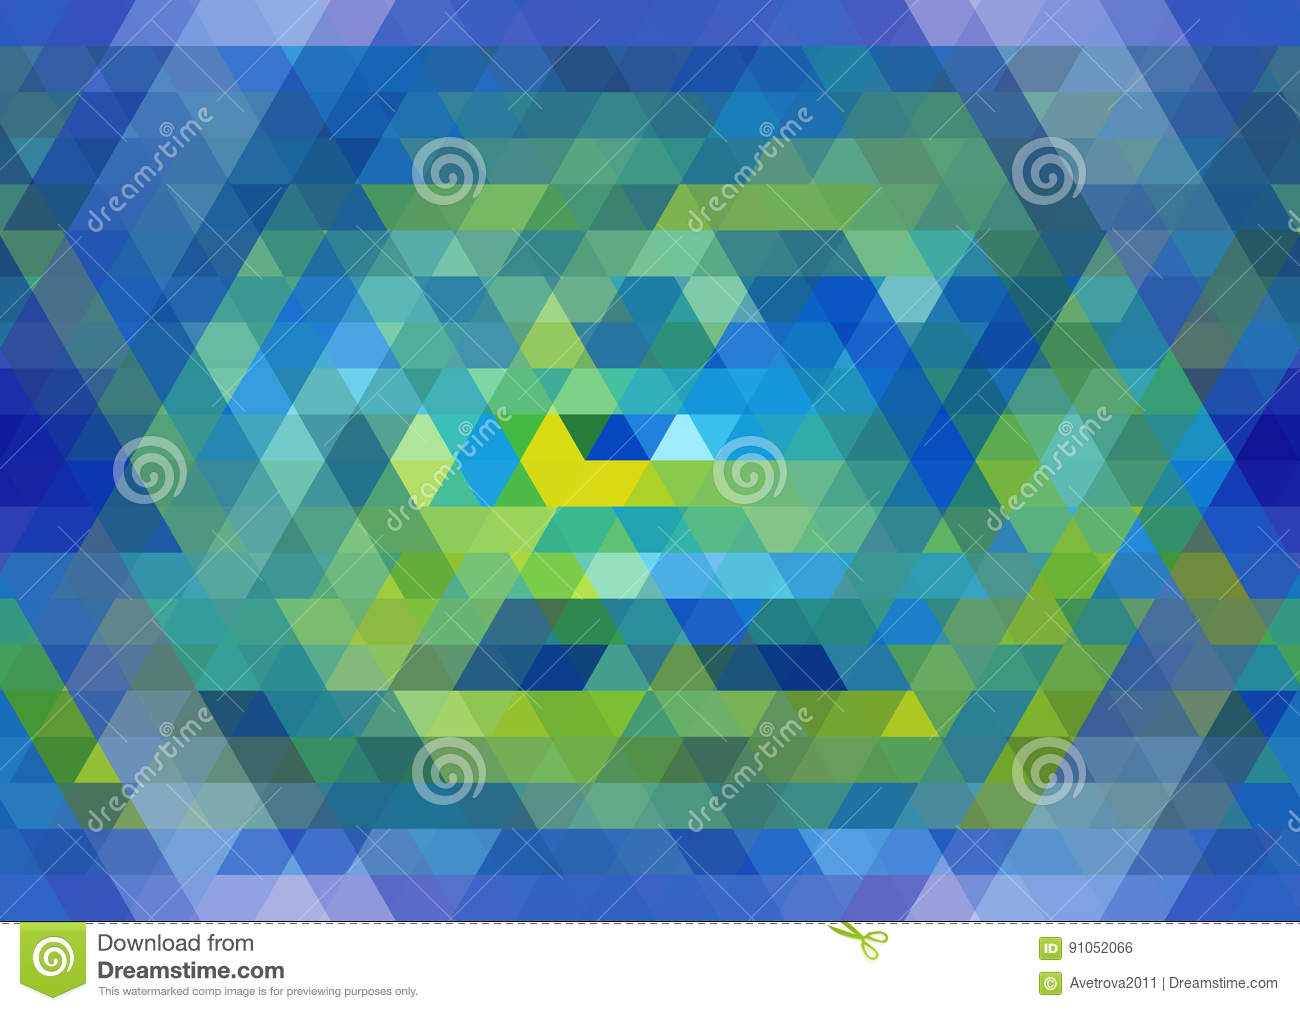 Blue and yellow seamless triangular pattern. Abstract geometric background. Vector